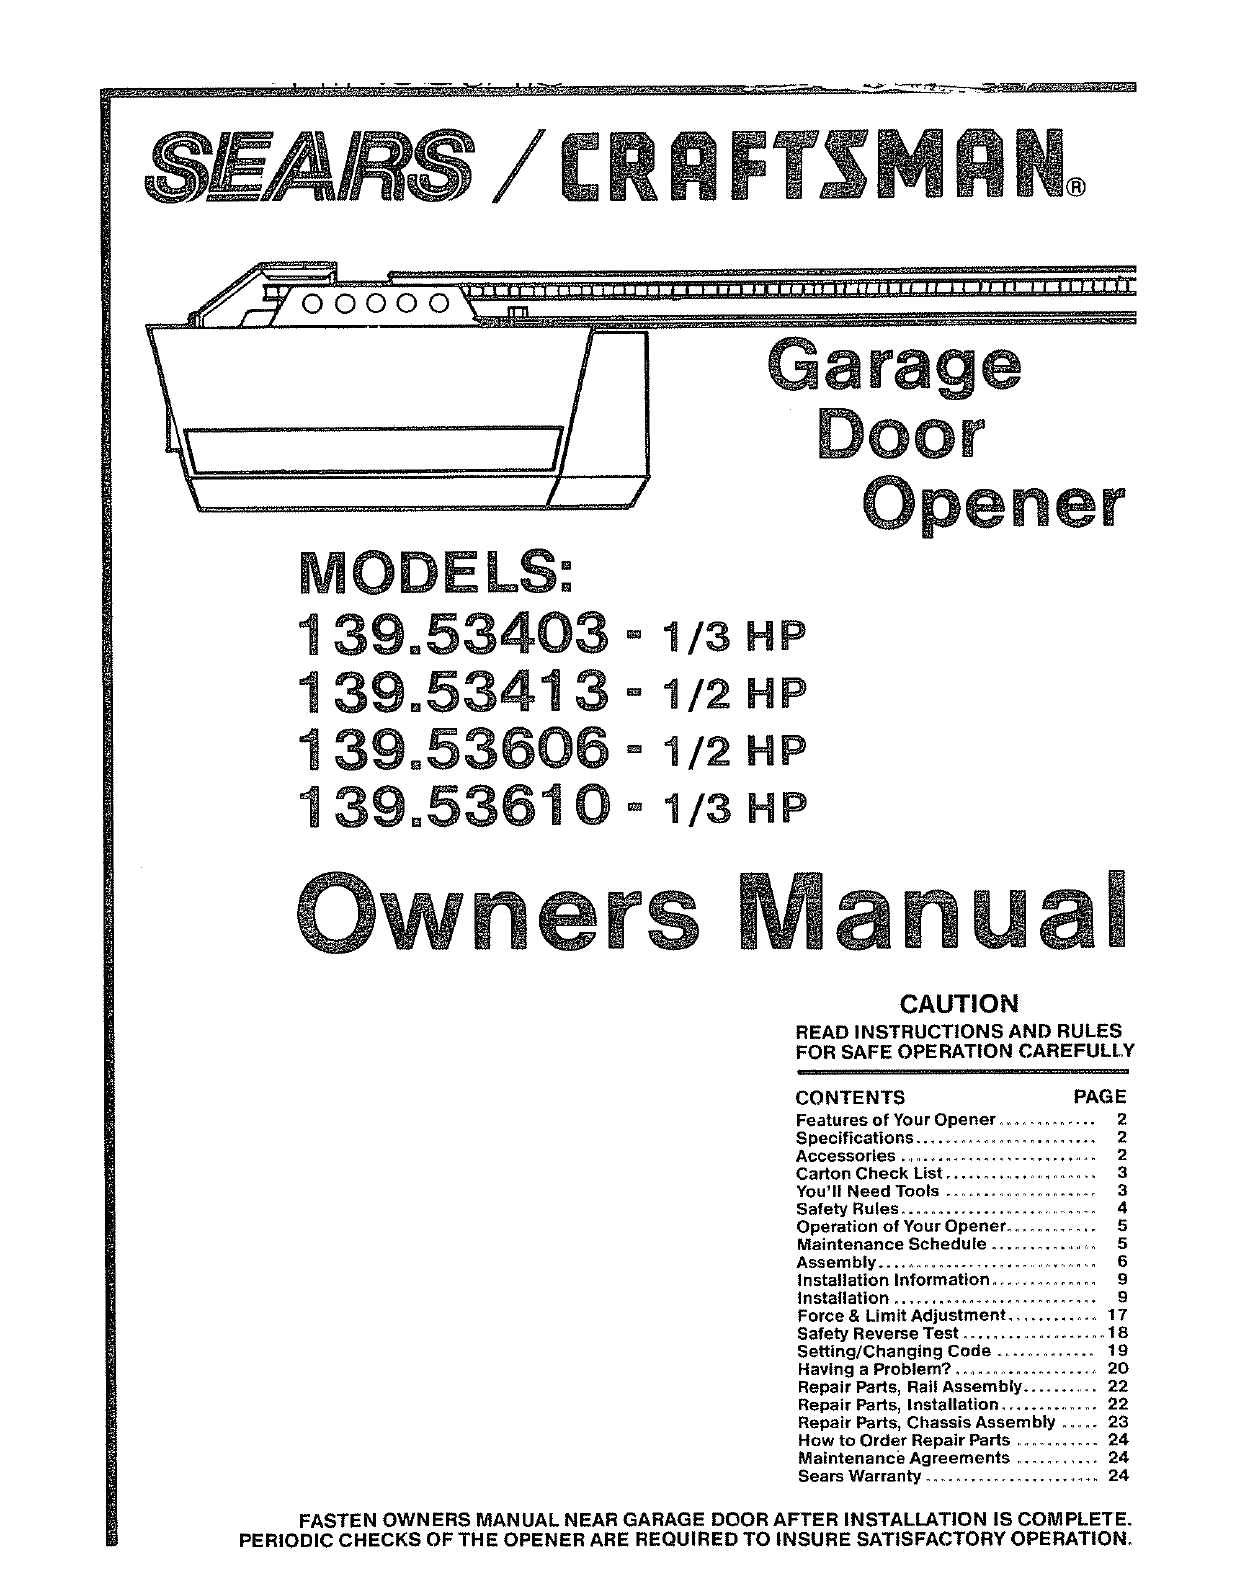 4e24e83f 95d3 4892 ae01 8deb09c598a8 bg1 craftsman garage door opener 139 53403 user guide manualsonline com Chamberlain Garage Door Opener Wiring- Diagram at crackthecode.co